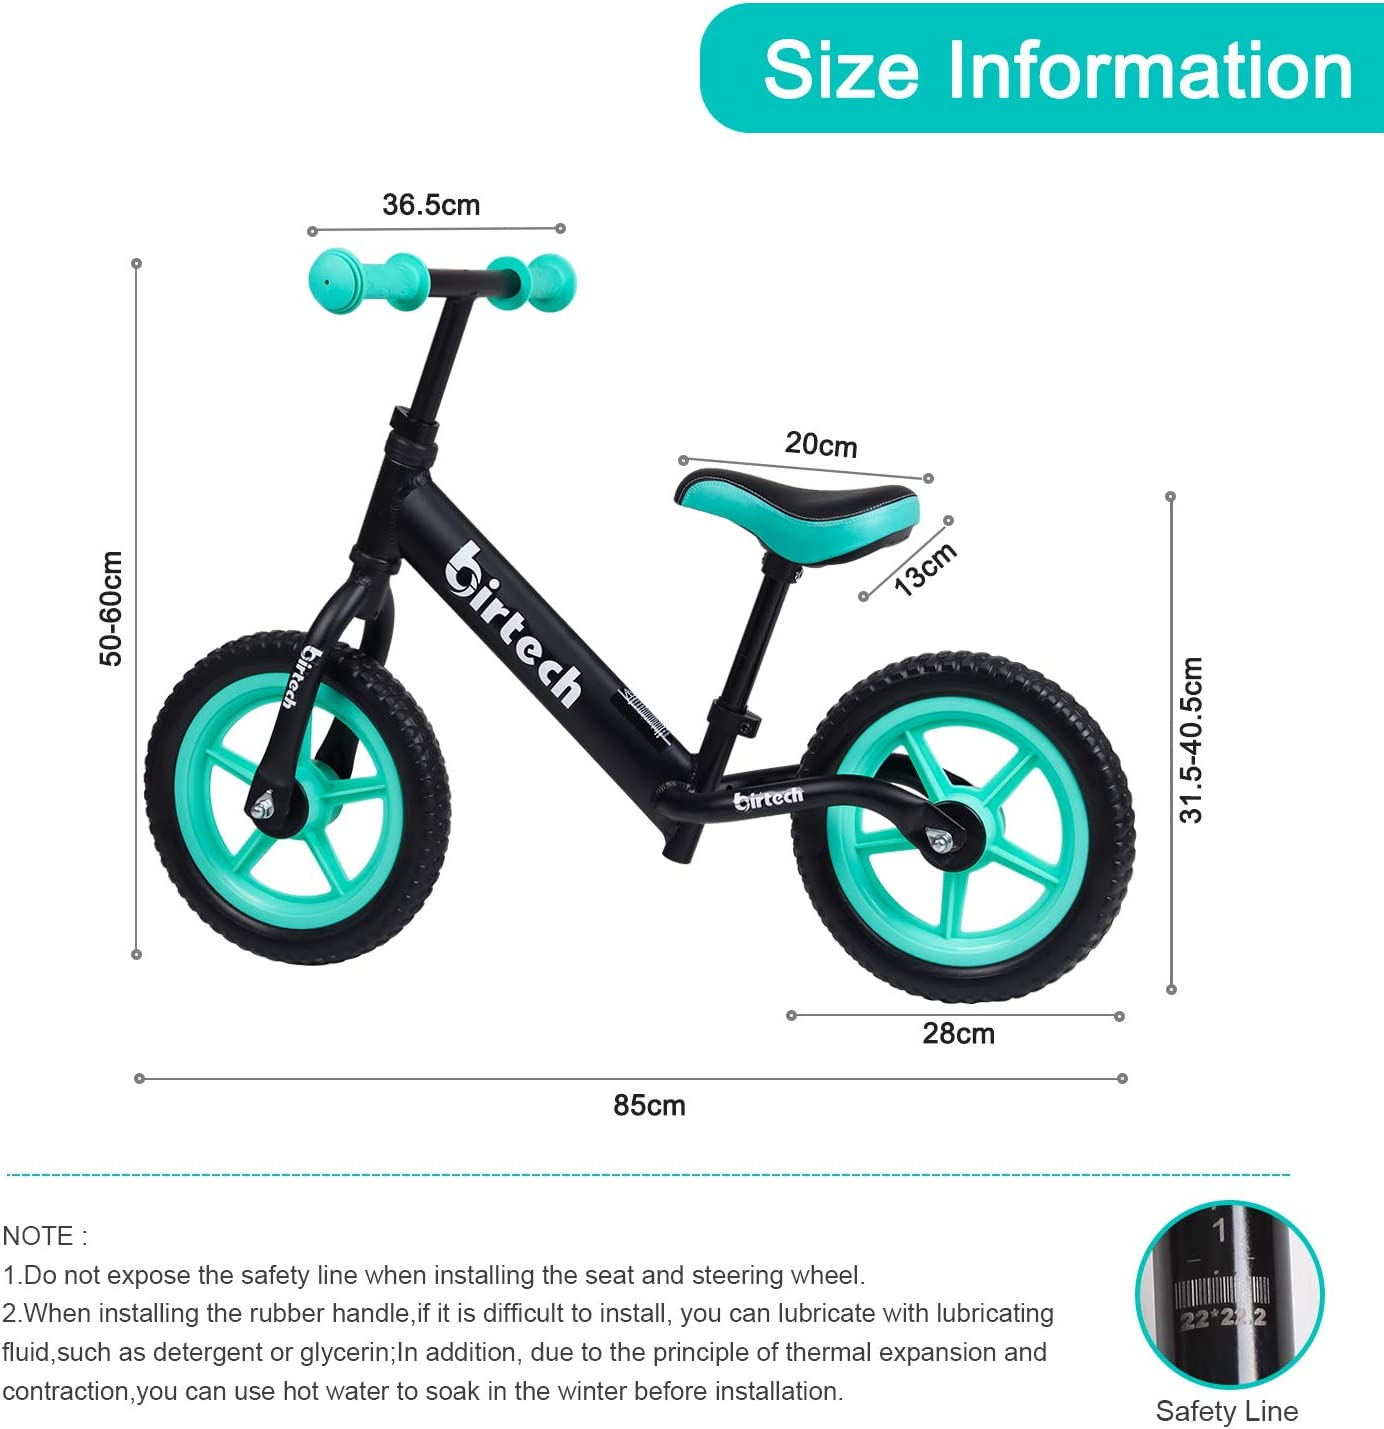 AB26 Clamp Bike Seat Post Clamp Quick Release Bicycle Post Saddle Mount Seat